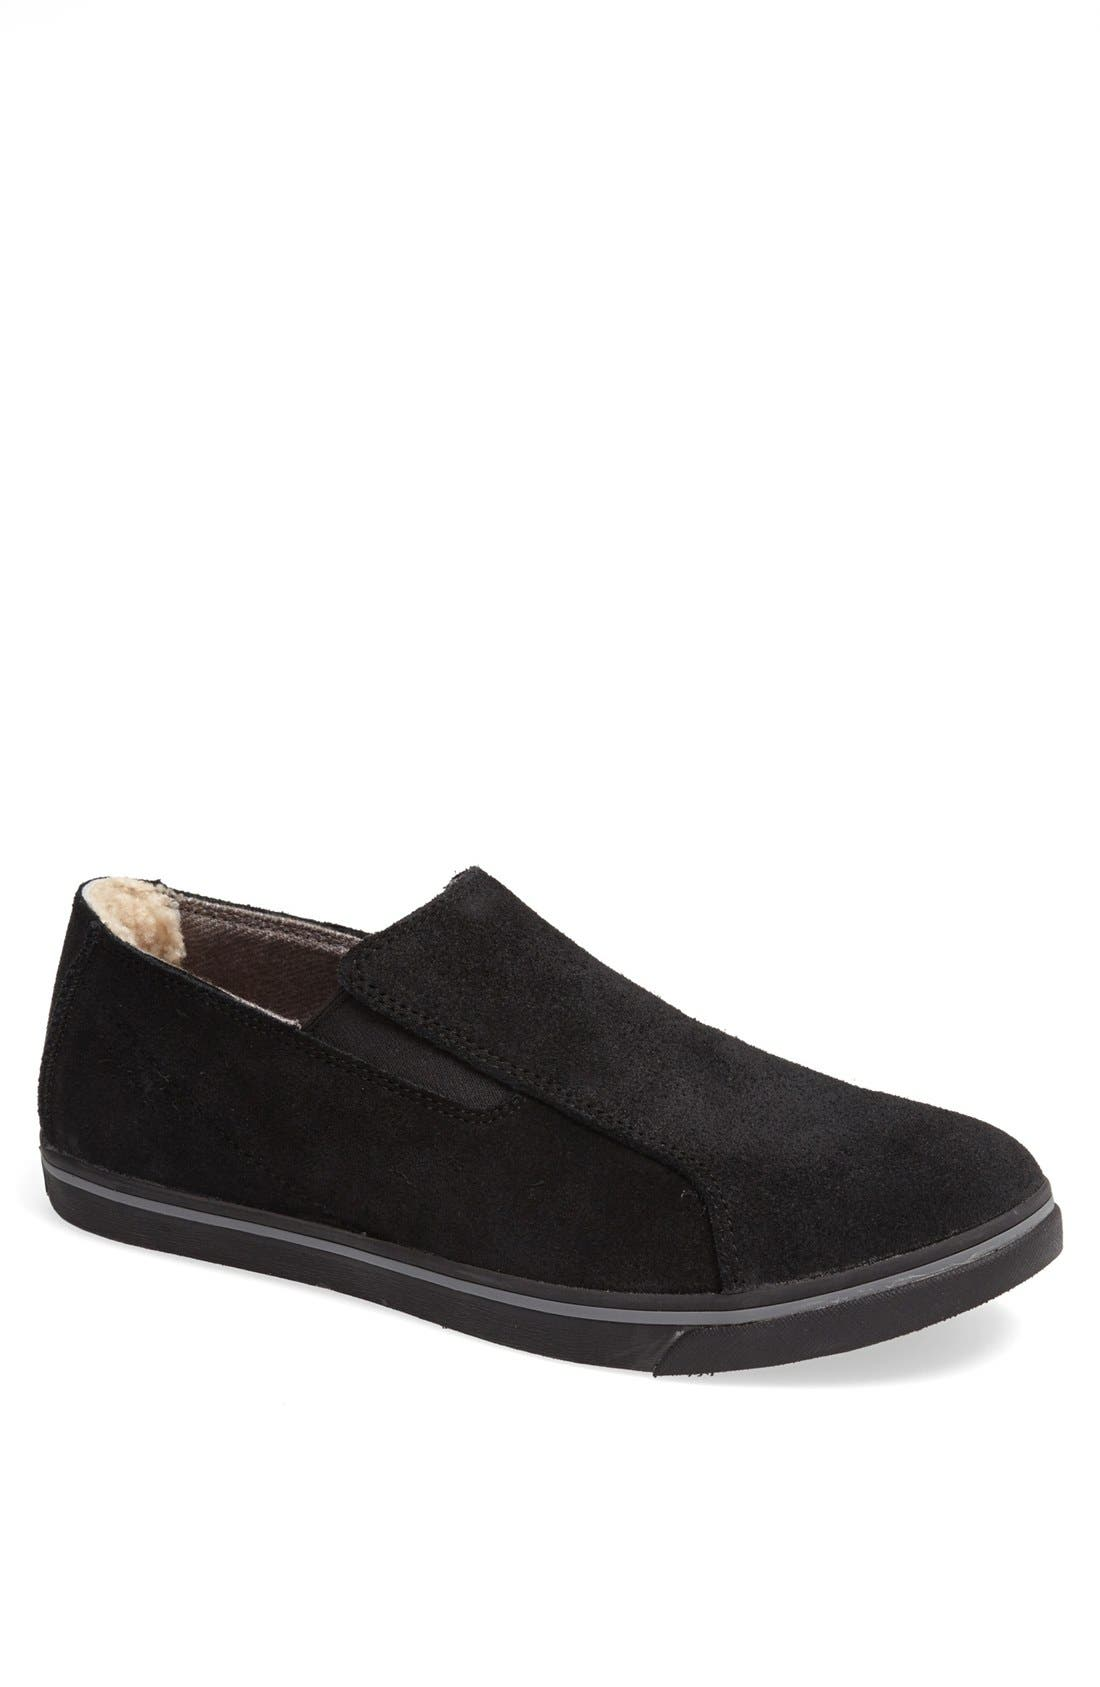 Alternate Image 1 Selected - UGG® Australia 'Bracken' Slip-On